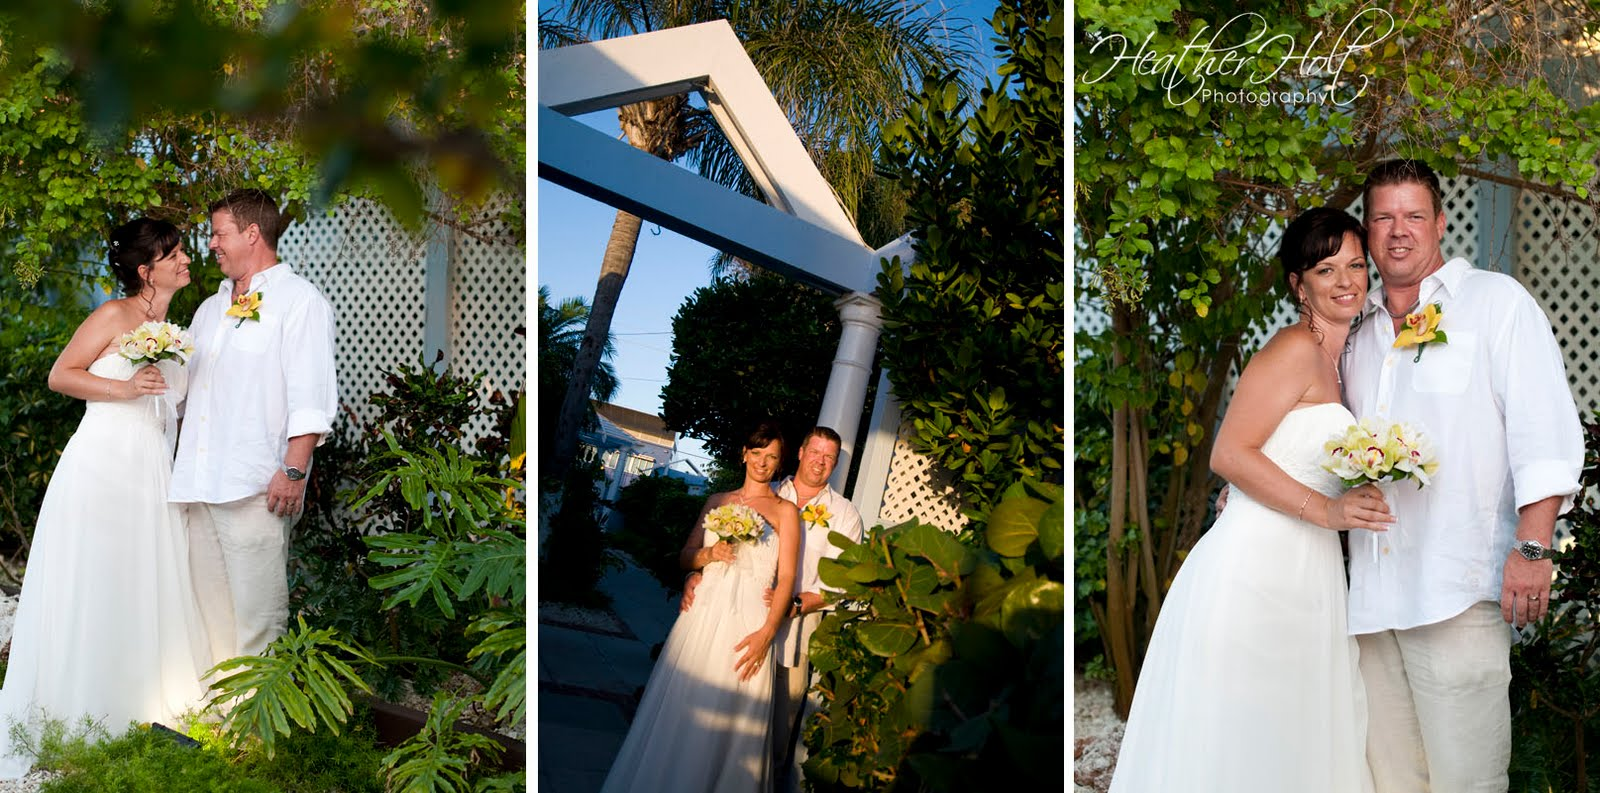 Aniko & Troy A Wedding at the Wharf   Heather Holt Photography ...